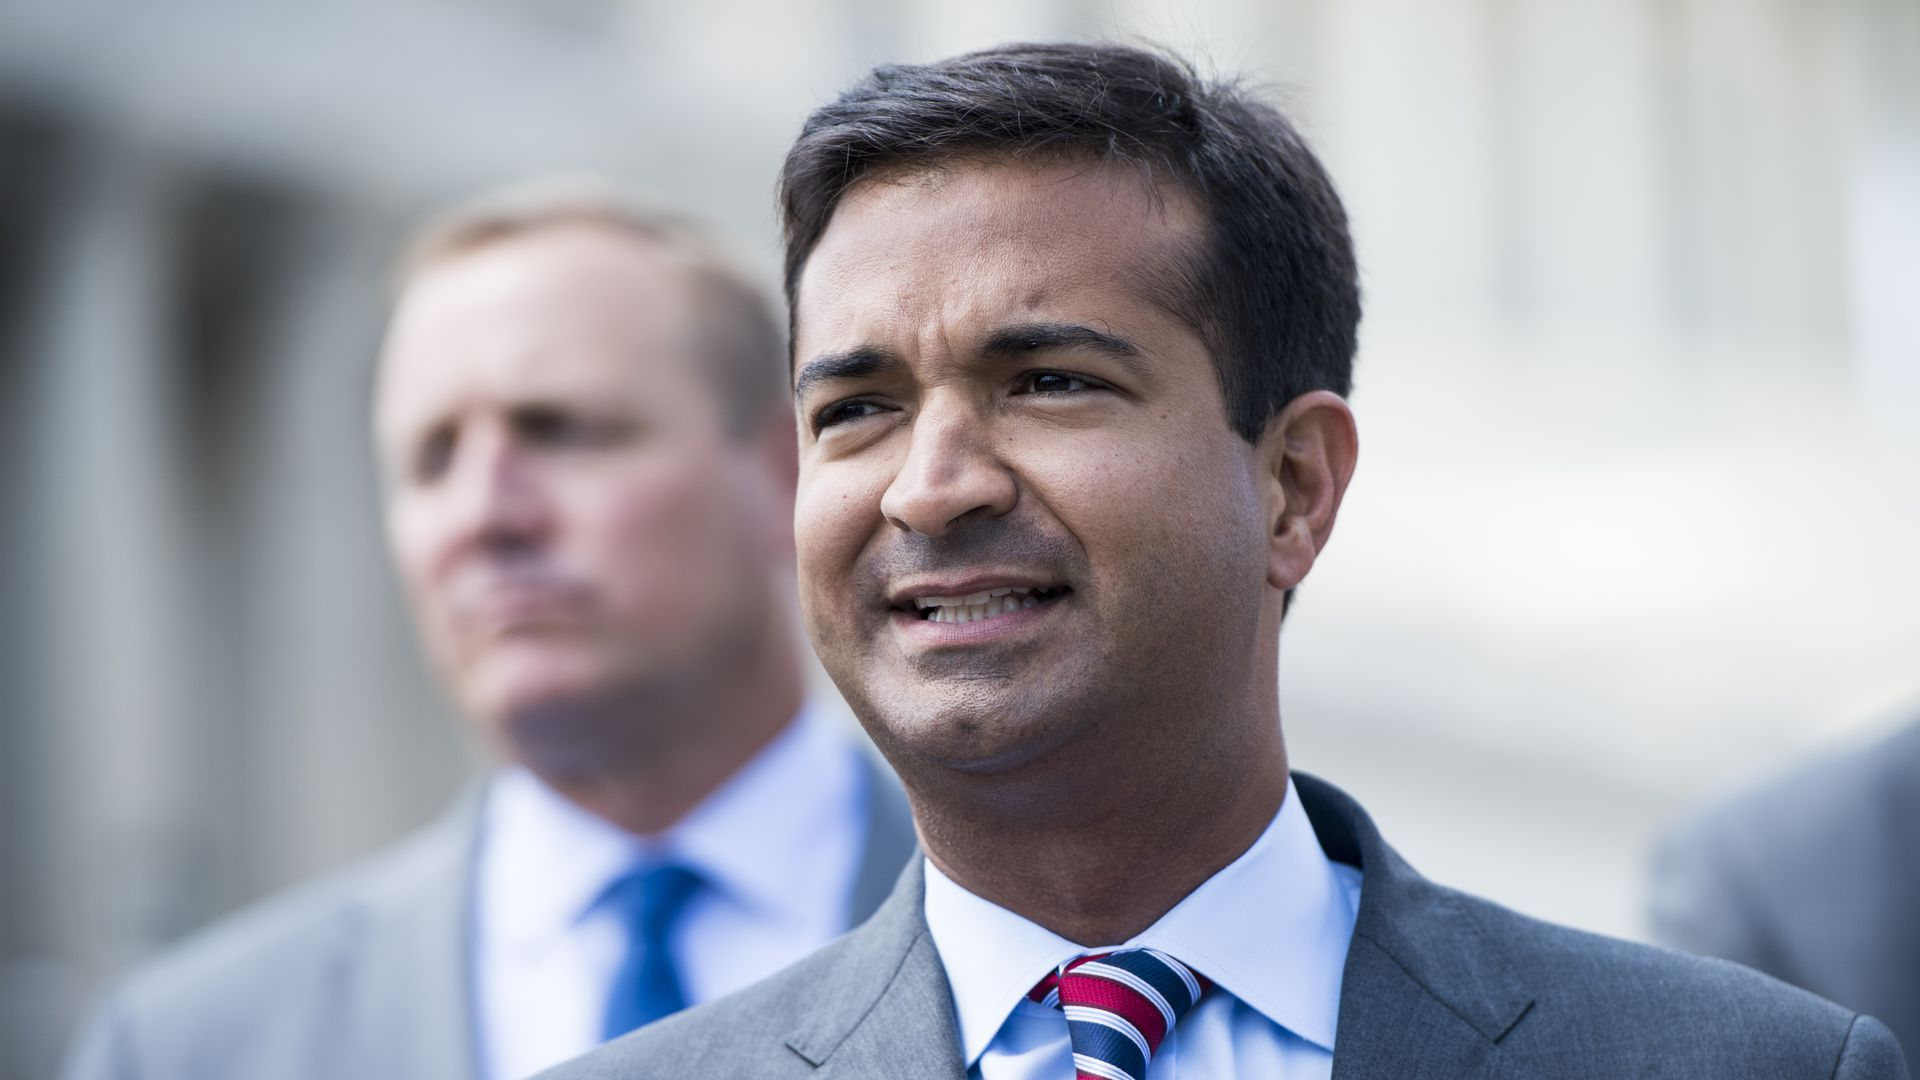 Rep. Carlos Curbelo speaks at a press conference